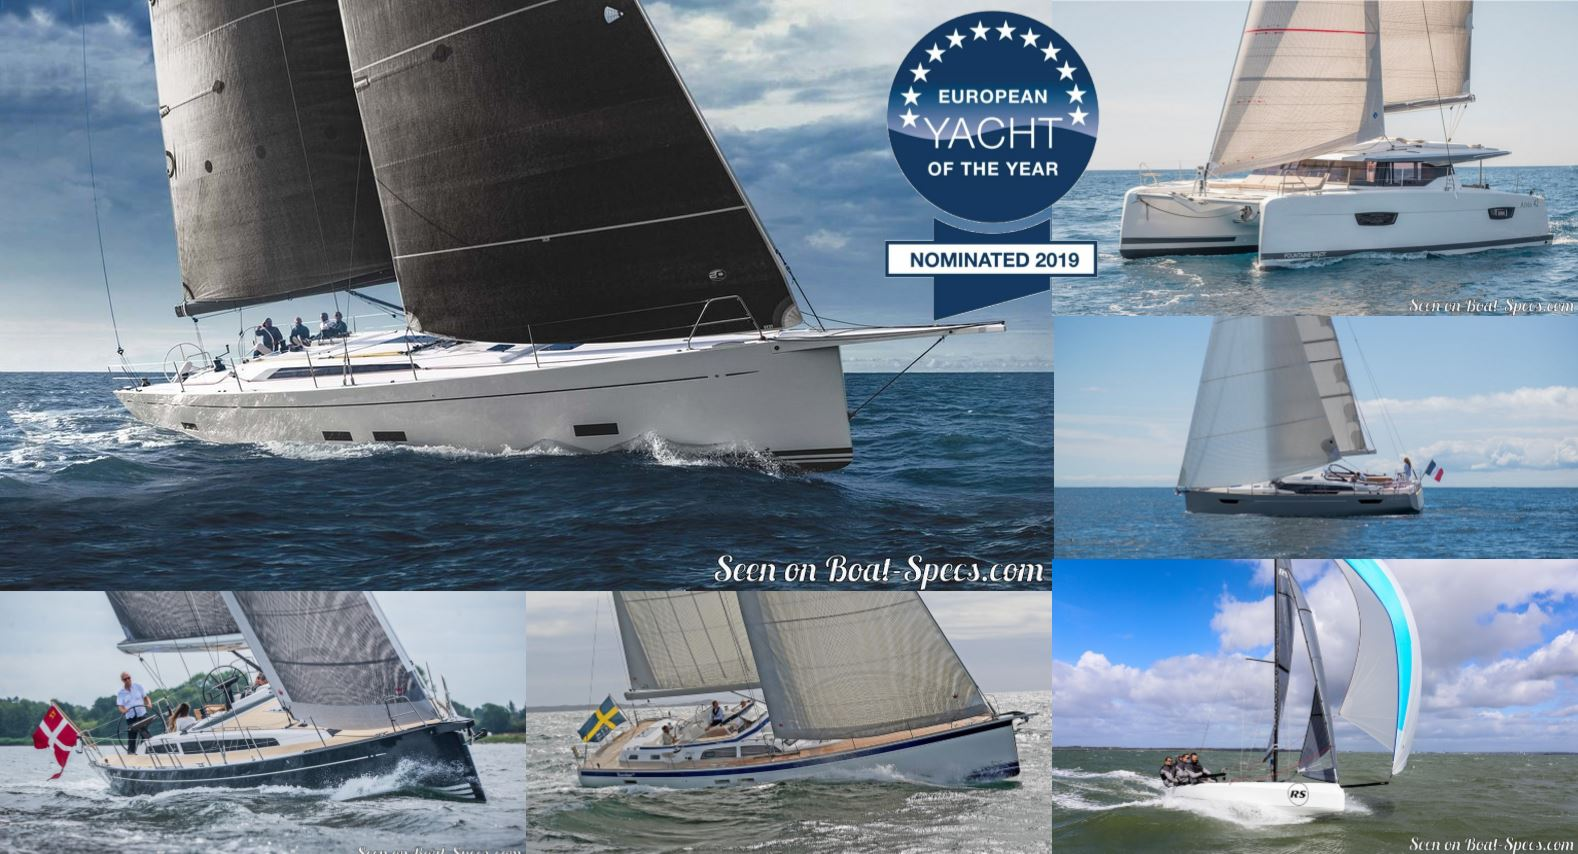 European Yacht of the Year 2019 nominated sailboats © Boat-Specs.com